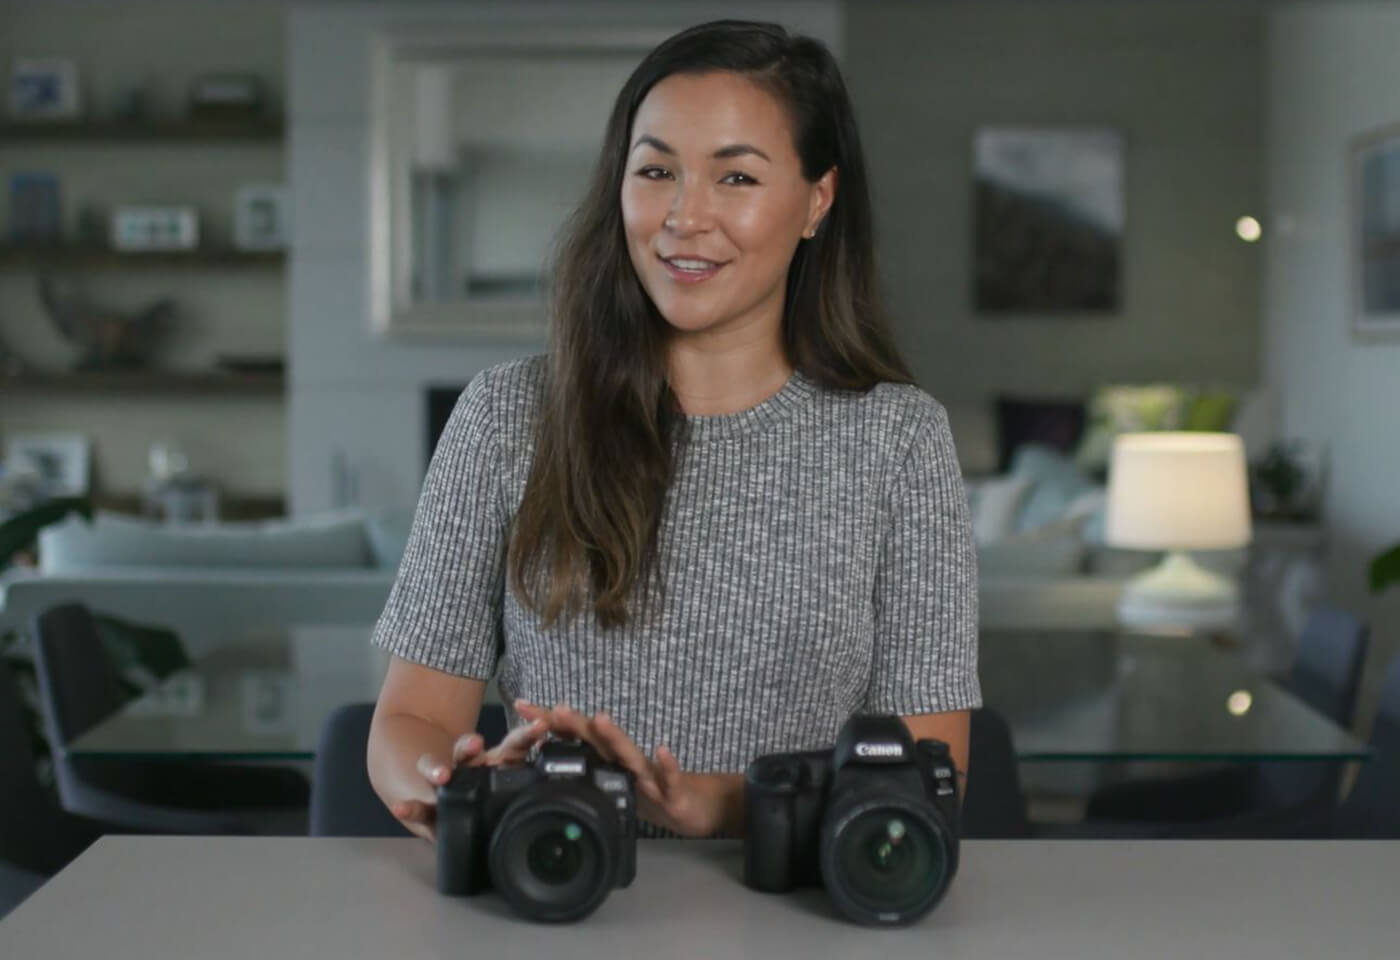 Gemma Peanut with the EOS R Mirrorless and 5D Mark IV Mirrorless